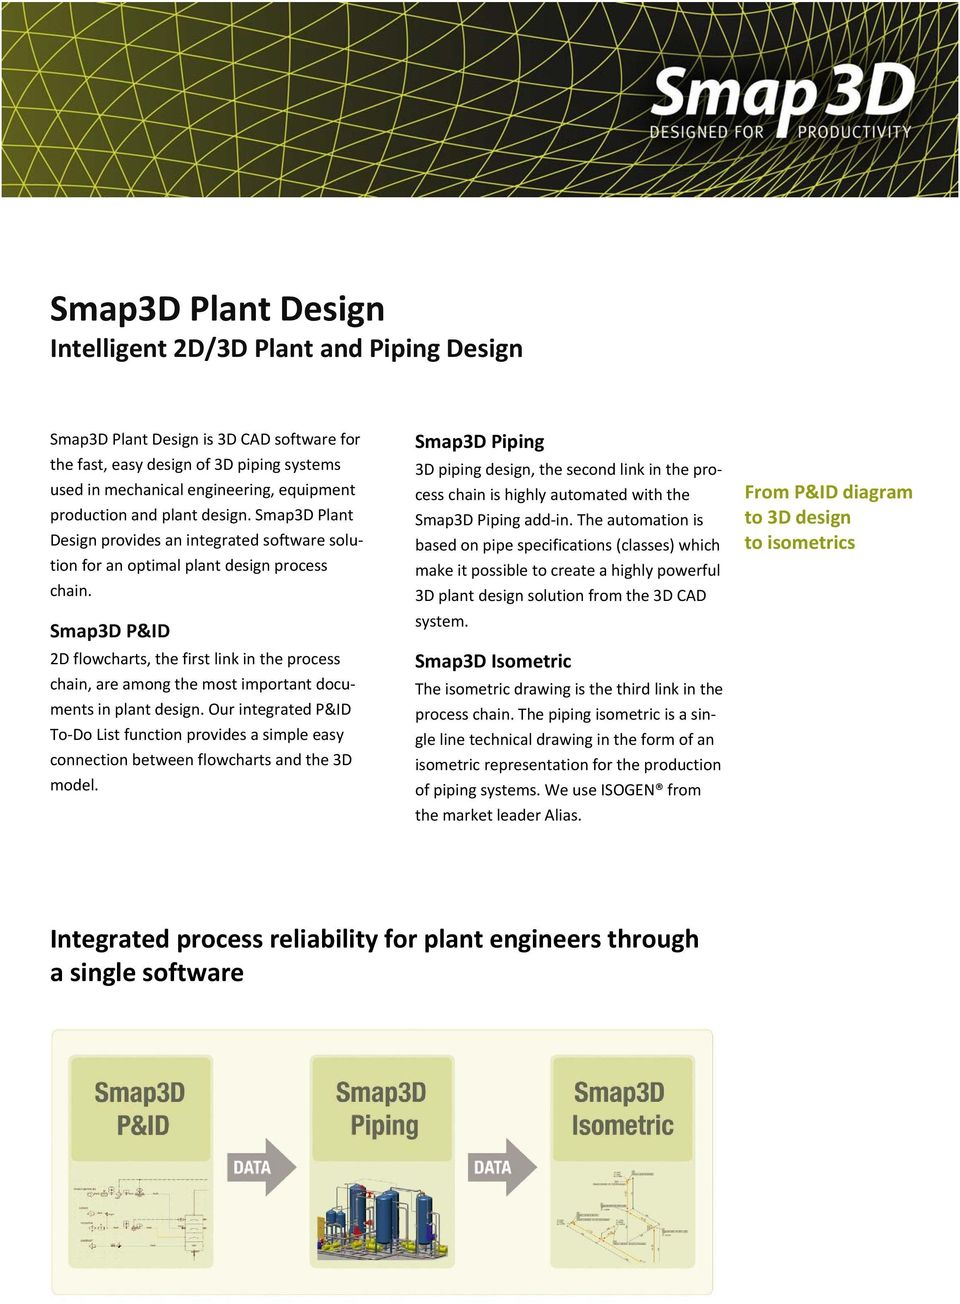 Smap3D P&ID 2D flowcharts, the first link in the process chain, are among the most important documents in plant design.